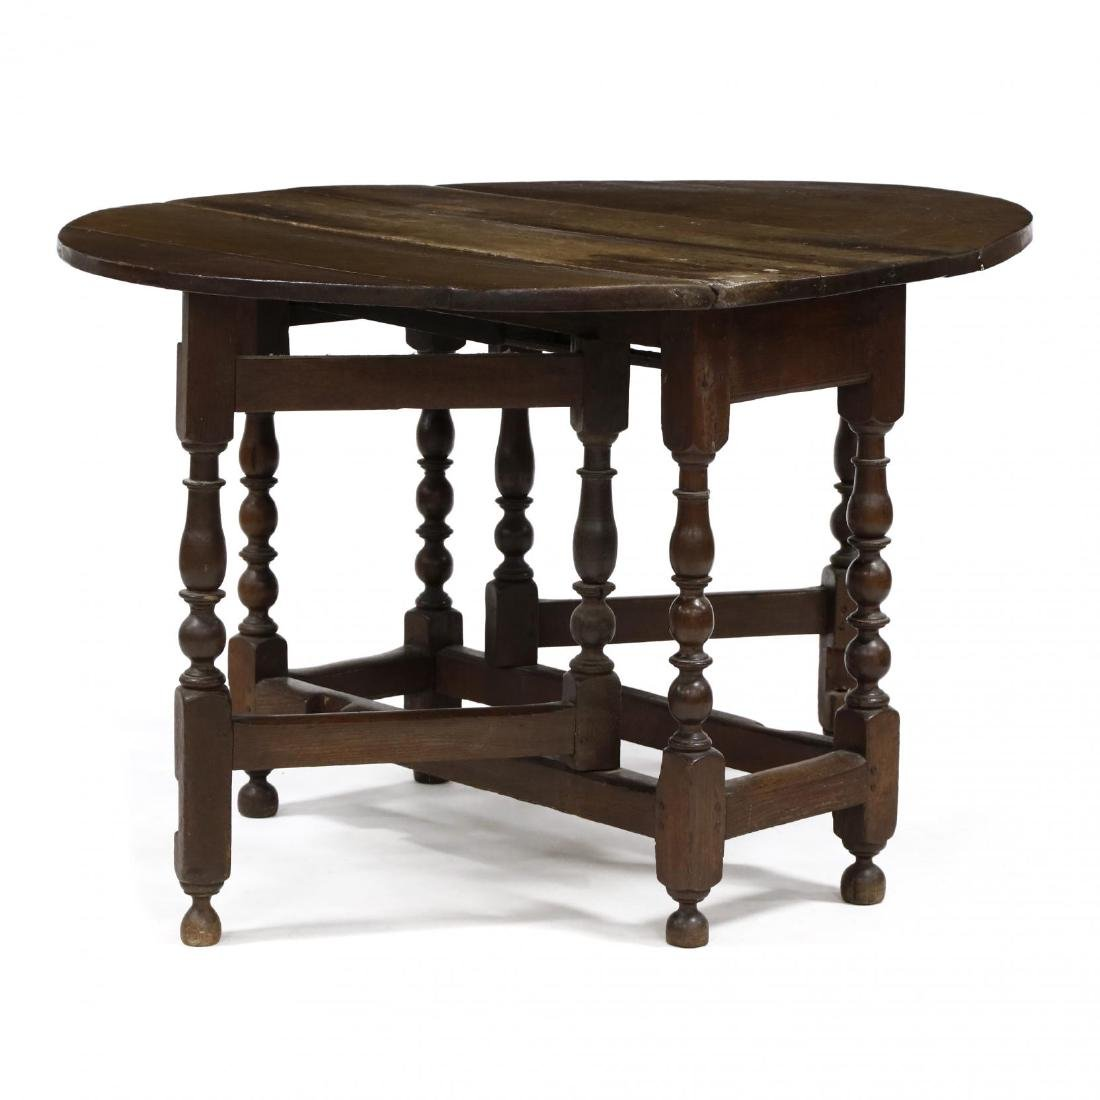 William and Mary Gateleg Table - 3